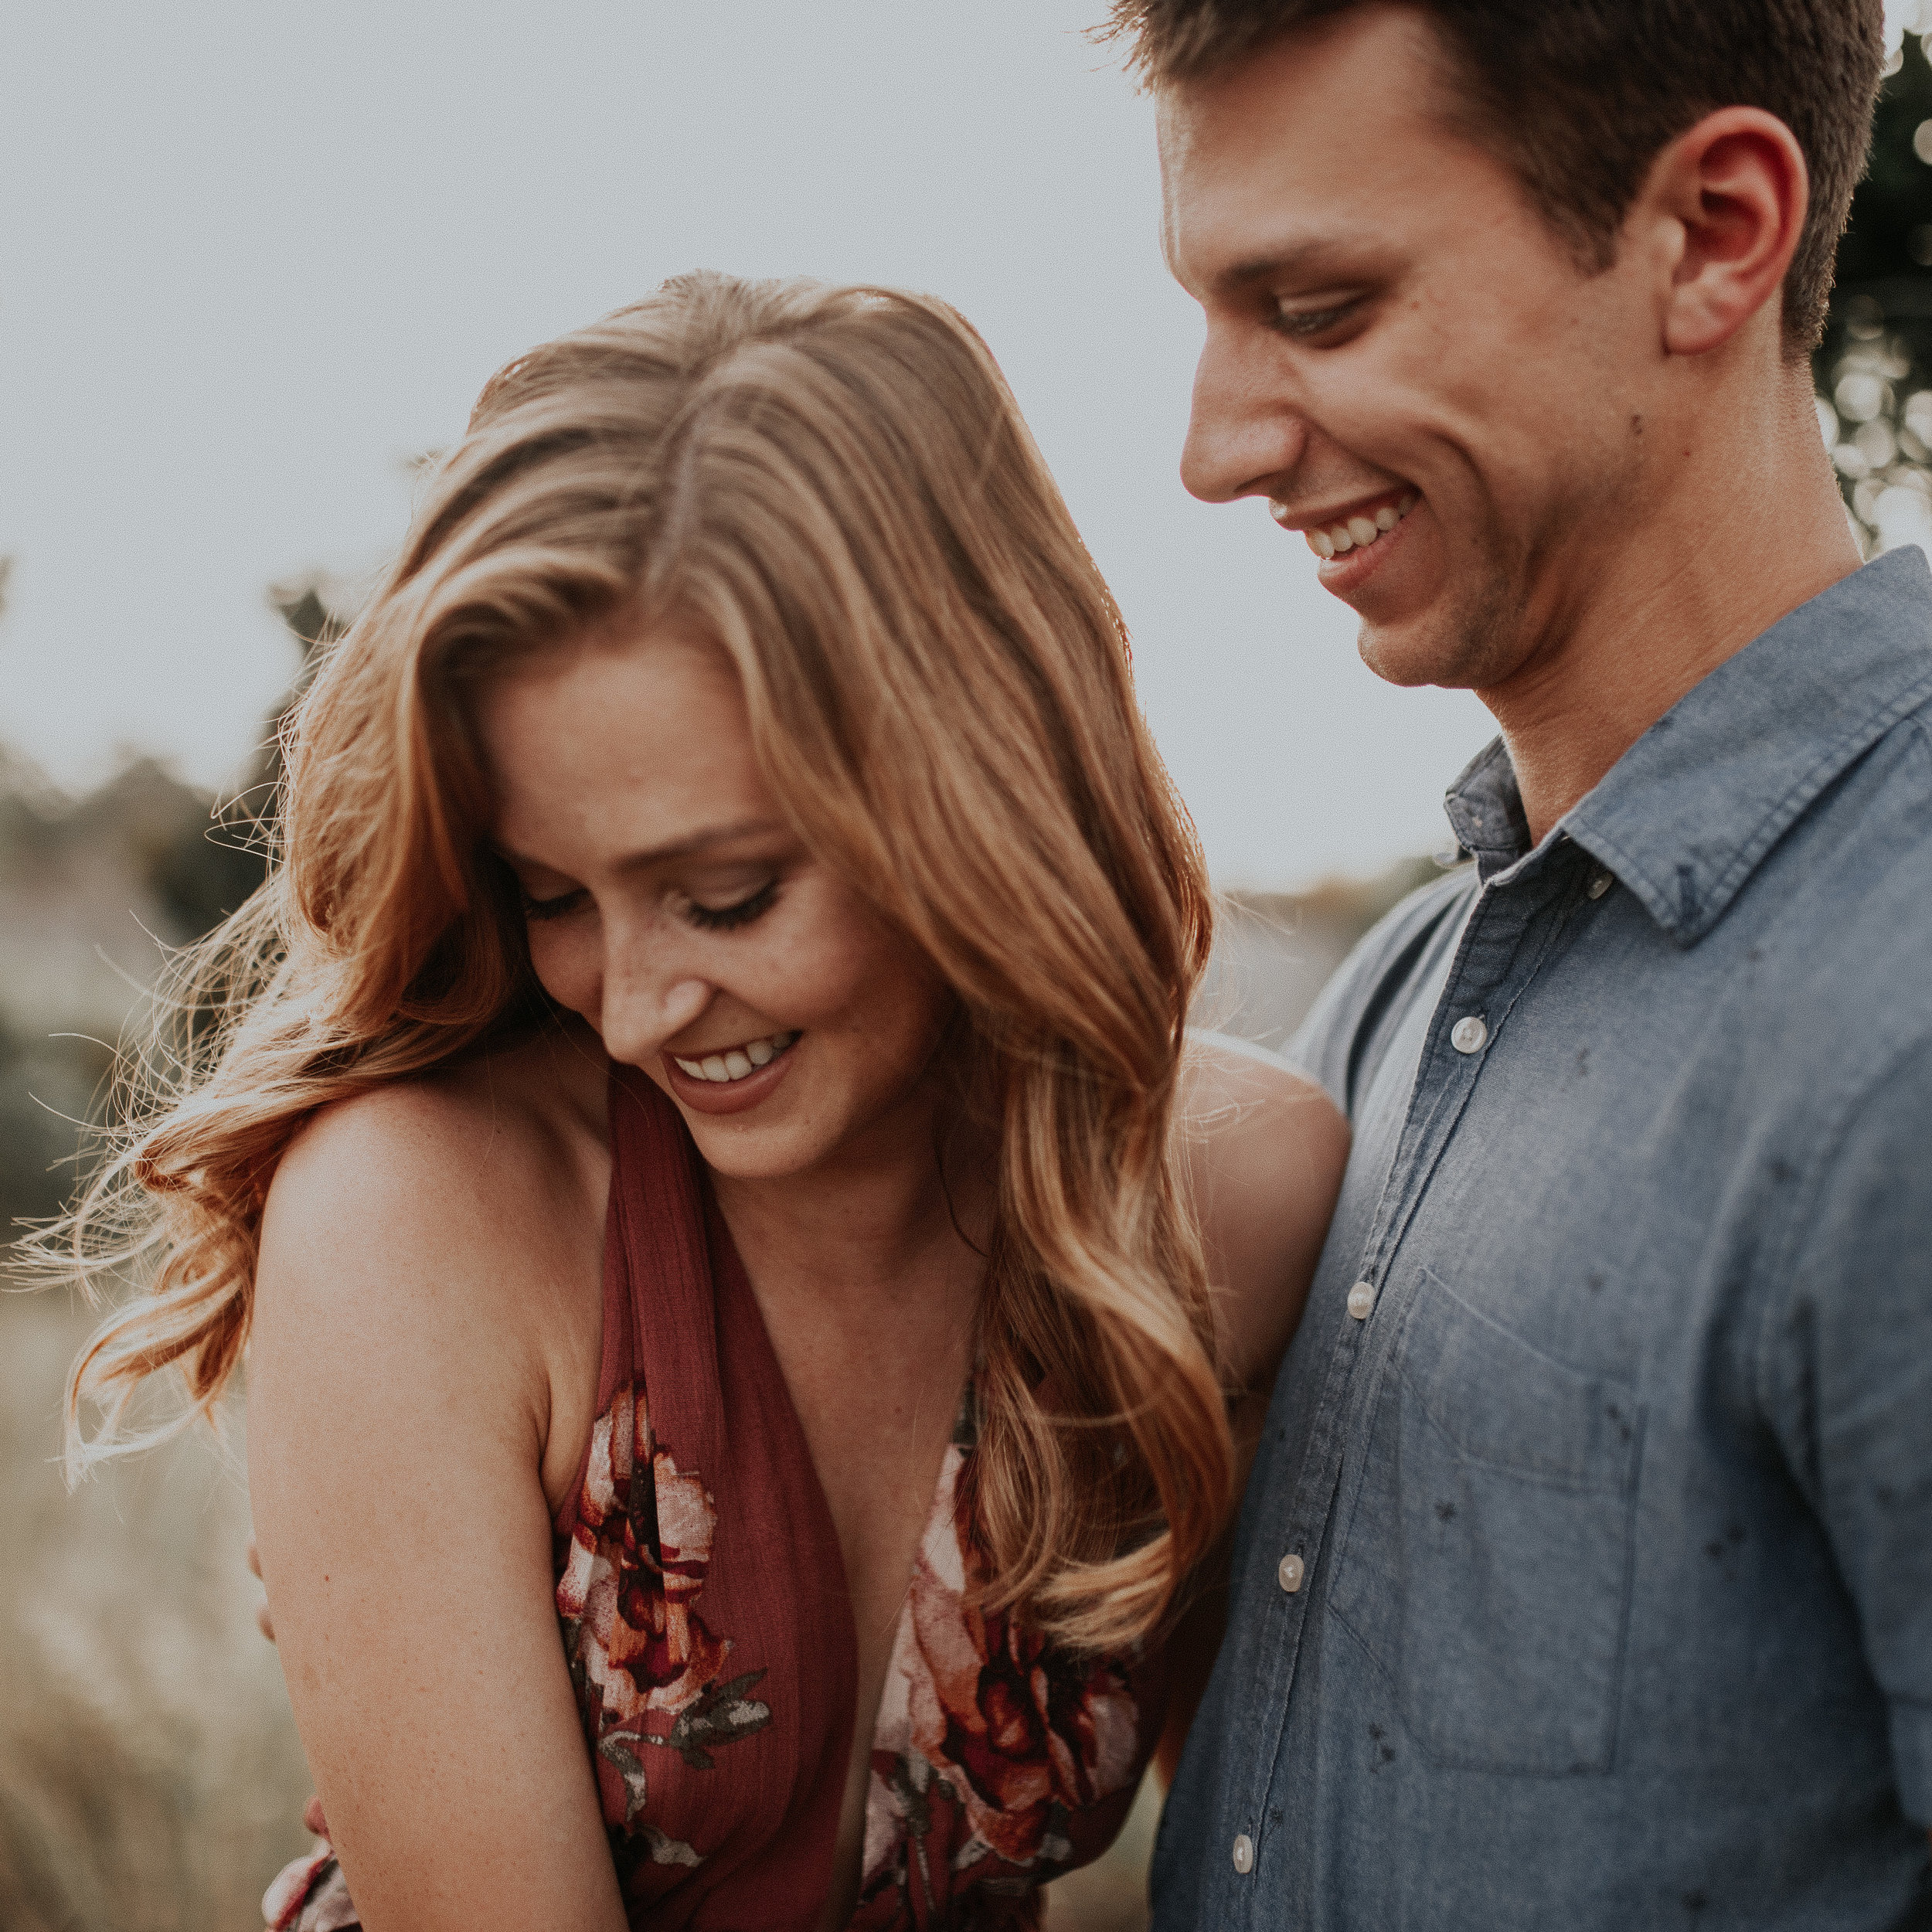 katie and brandon _ engagement session _ 08-5-1700206.jpg